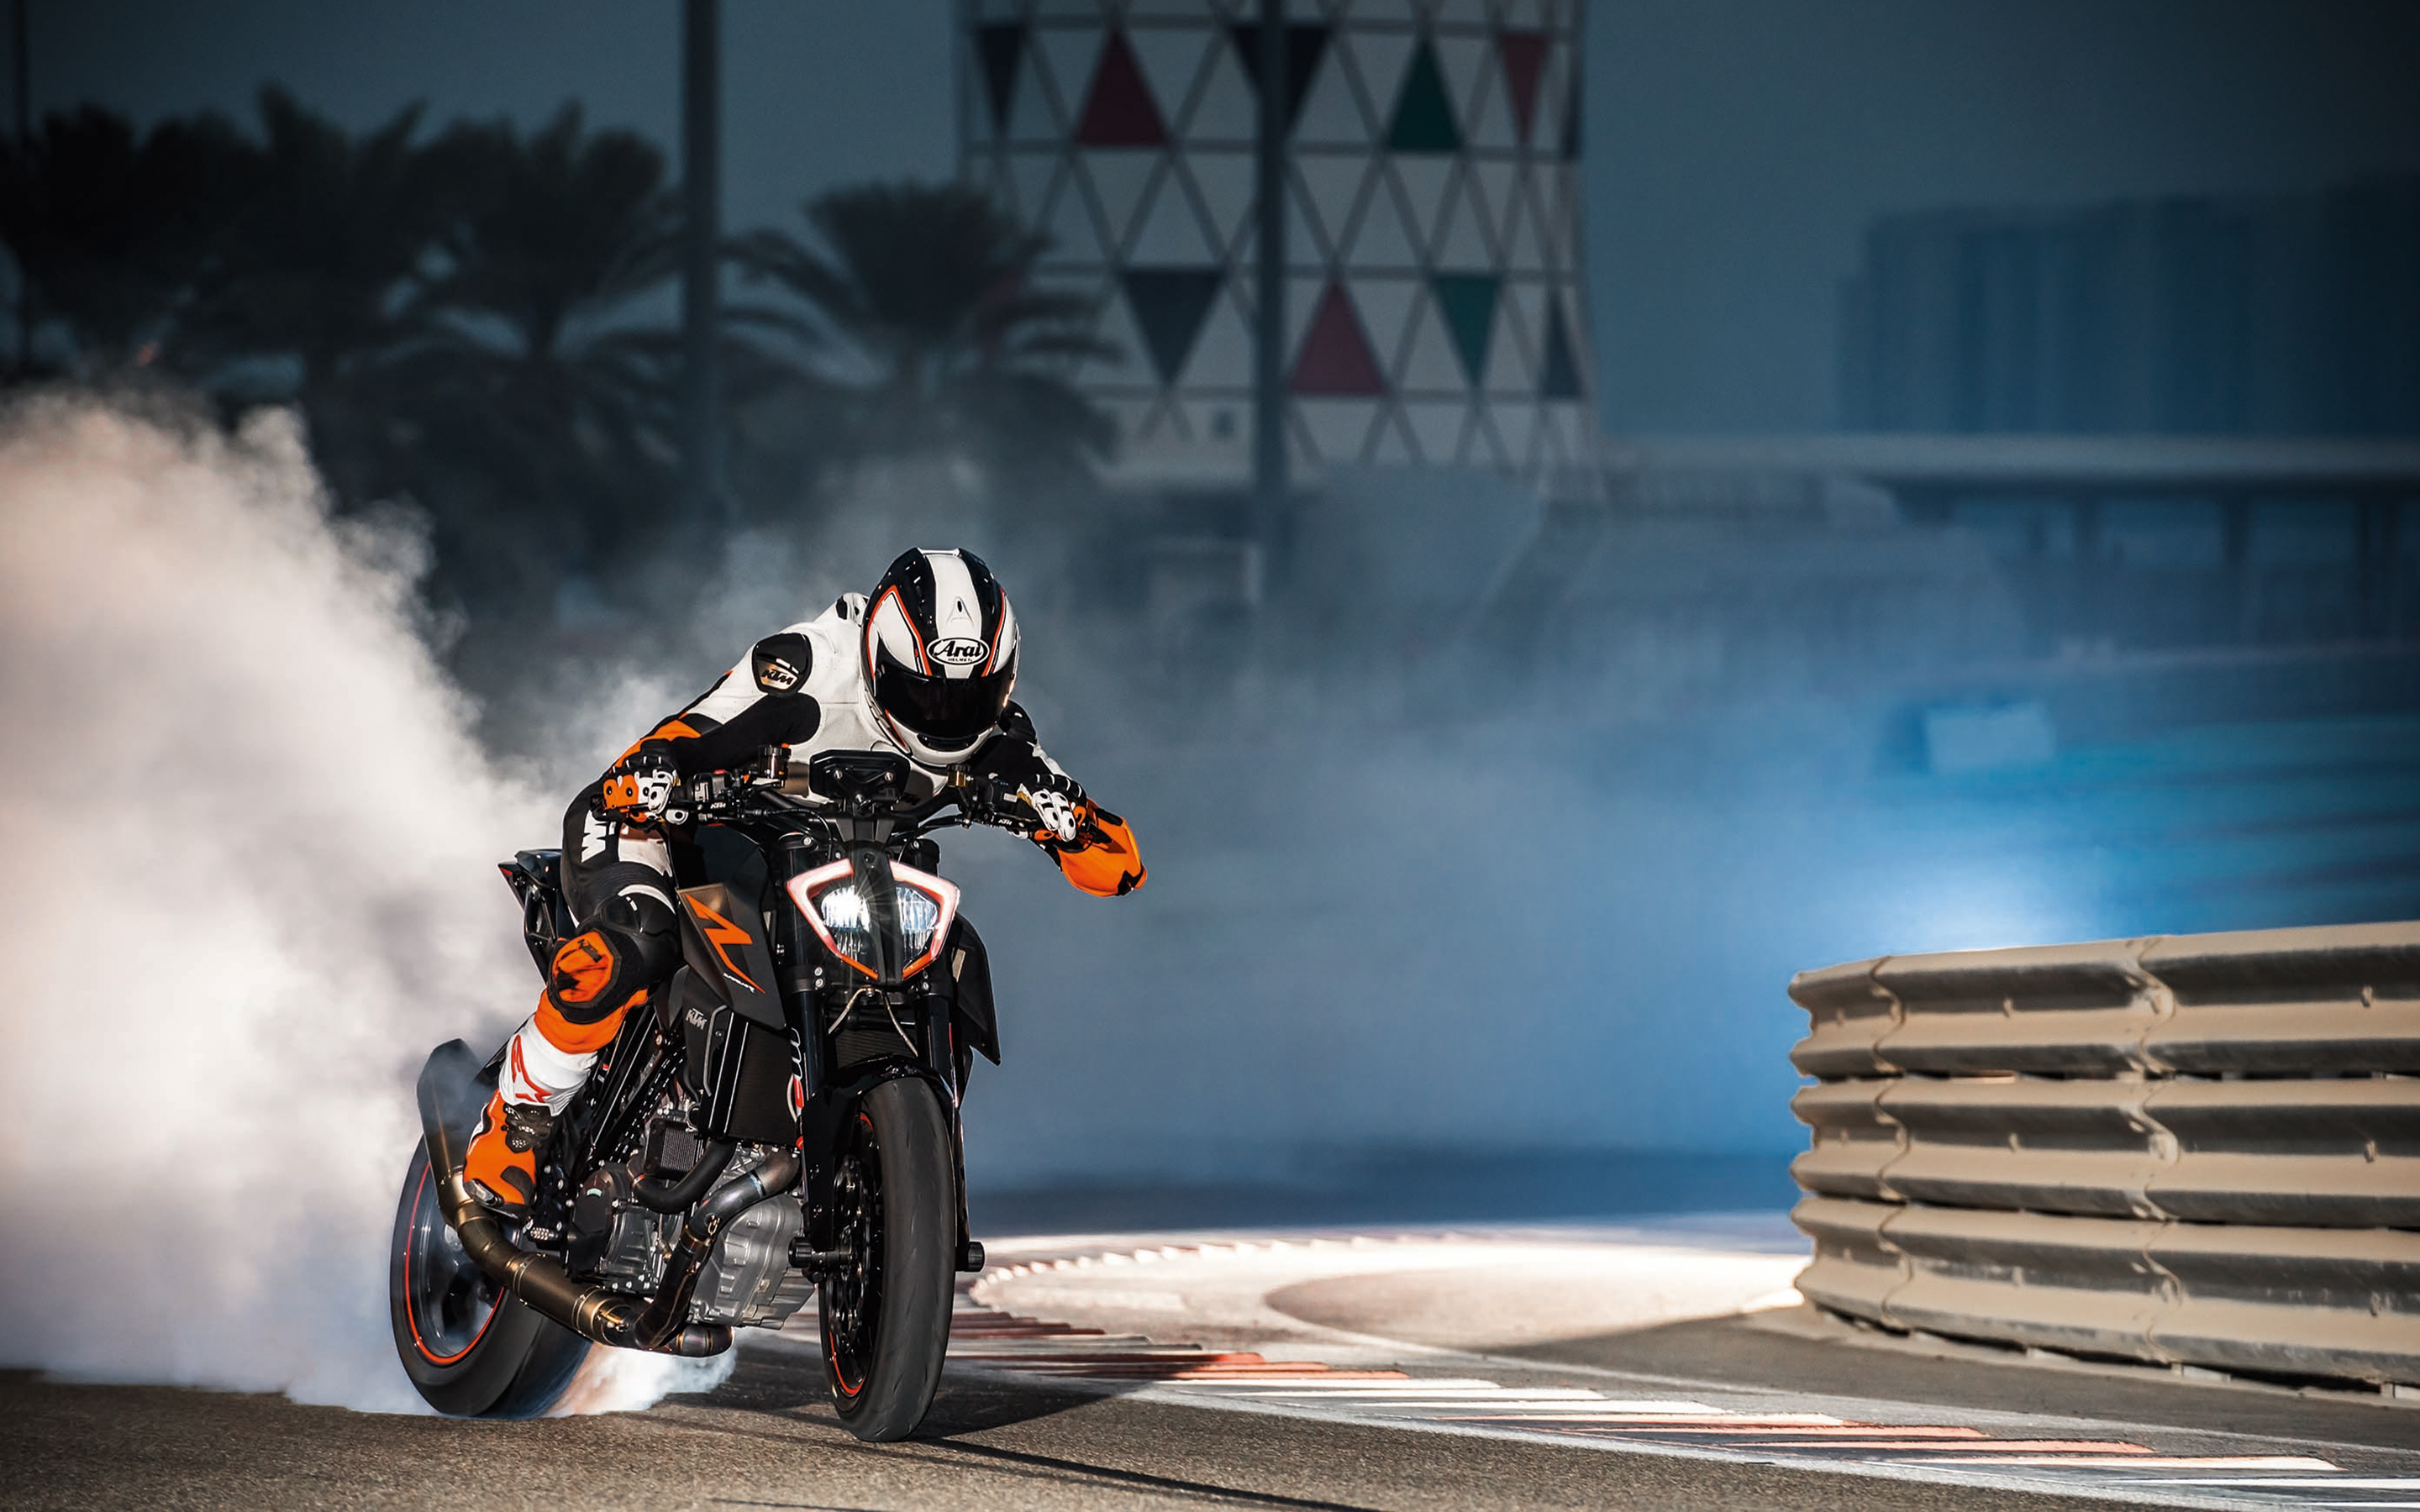 Ktm 1290 Super Duke Wallpaper Download High Resolution 4k